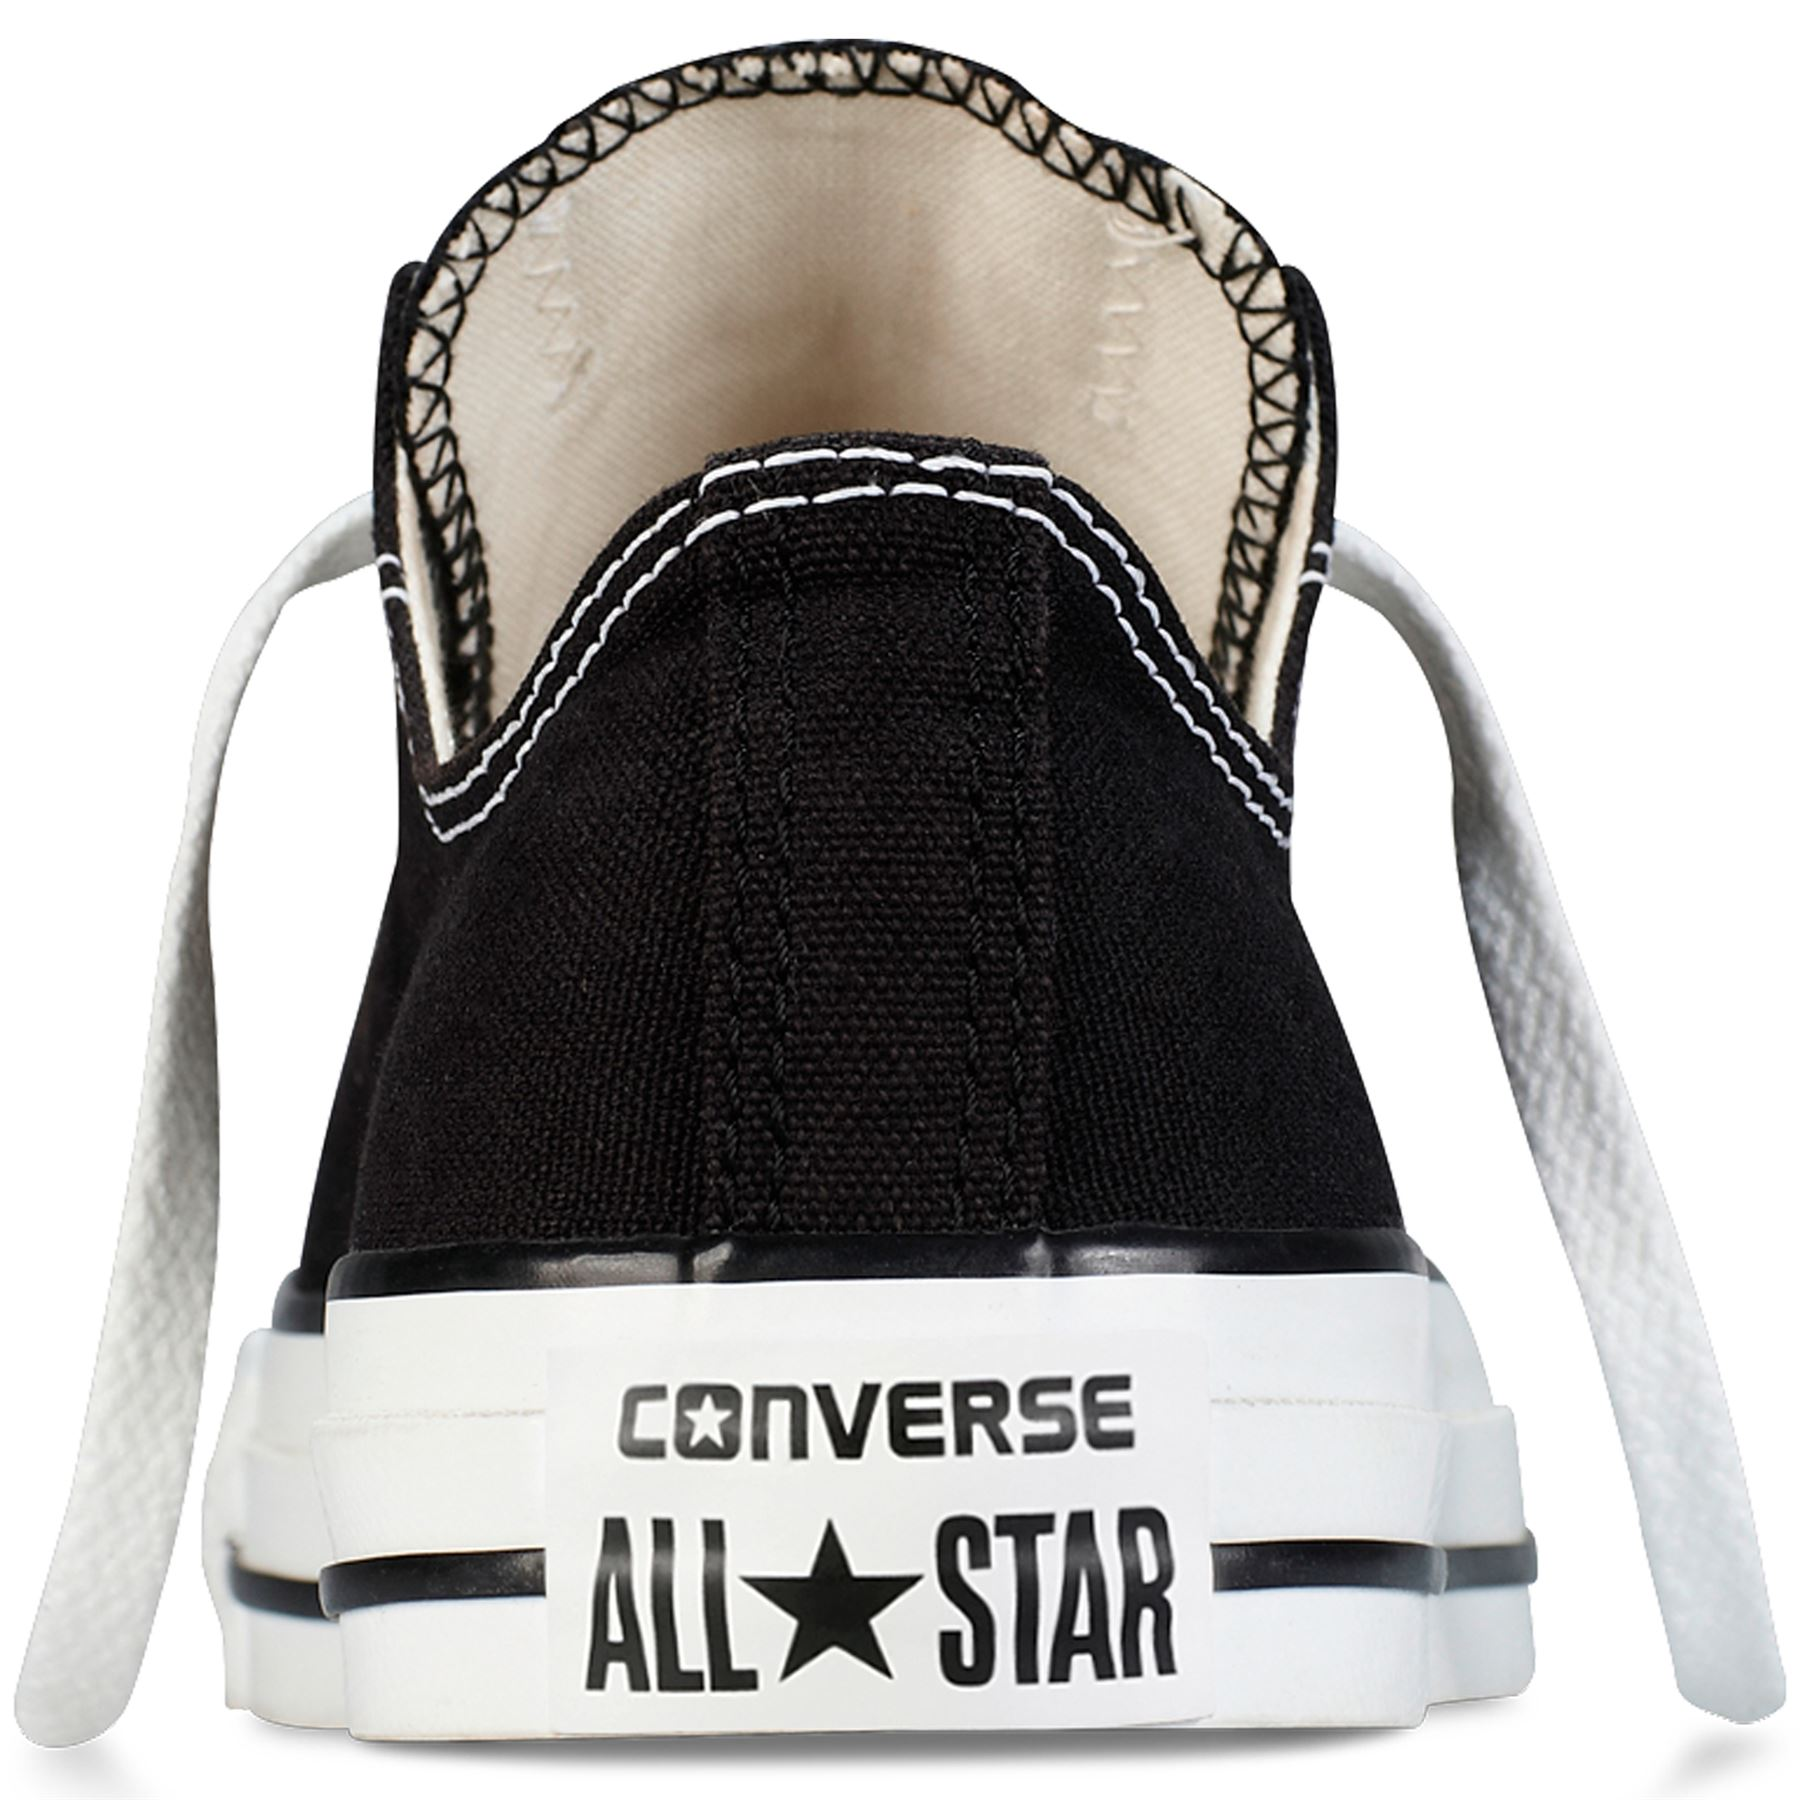 Converse-All-Star-Unisex-Chuck-Taylor-New-Mens-Womens-Low-Tops-Trainers-Pumps thumbnail 5